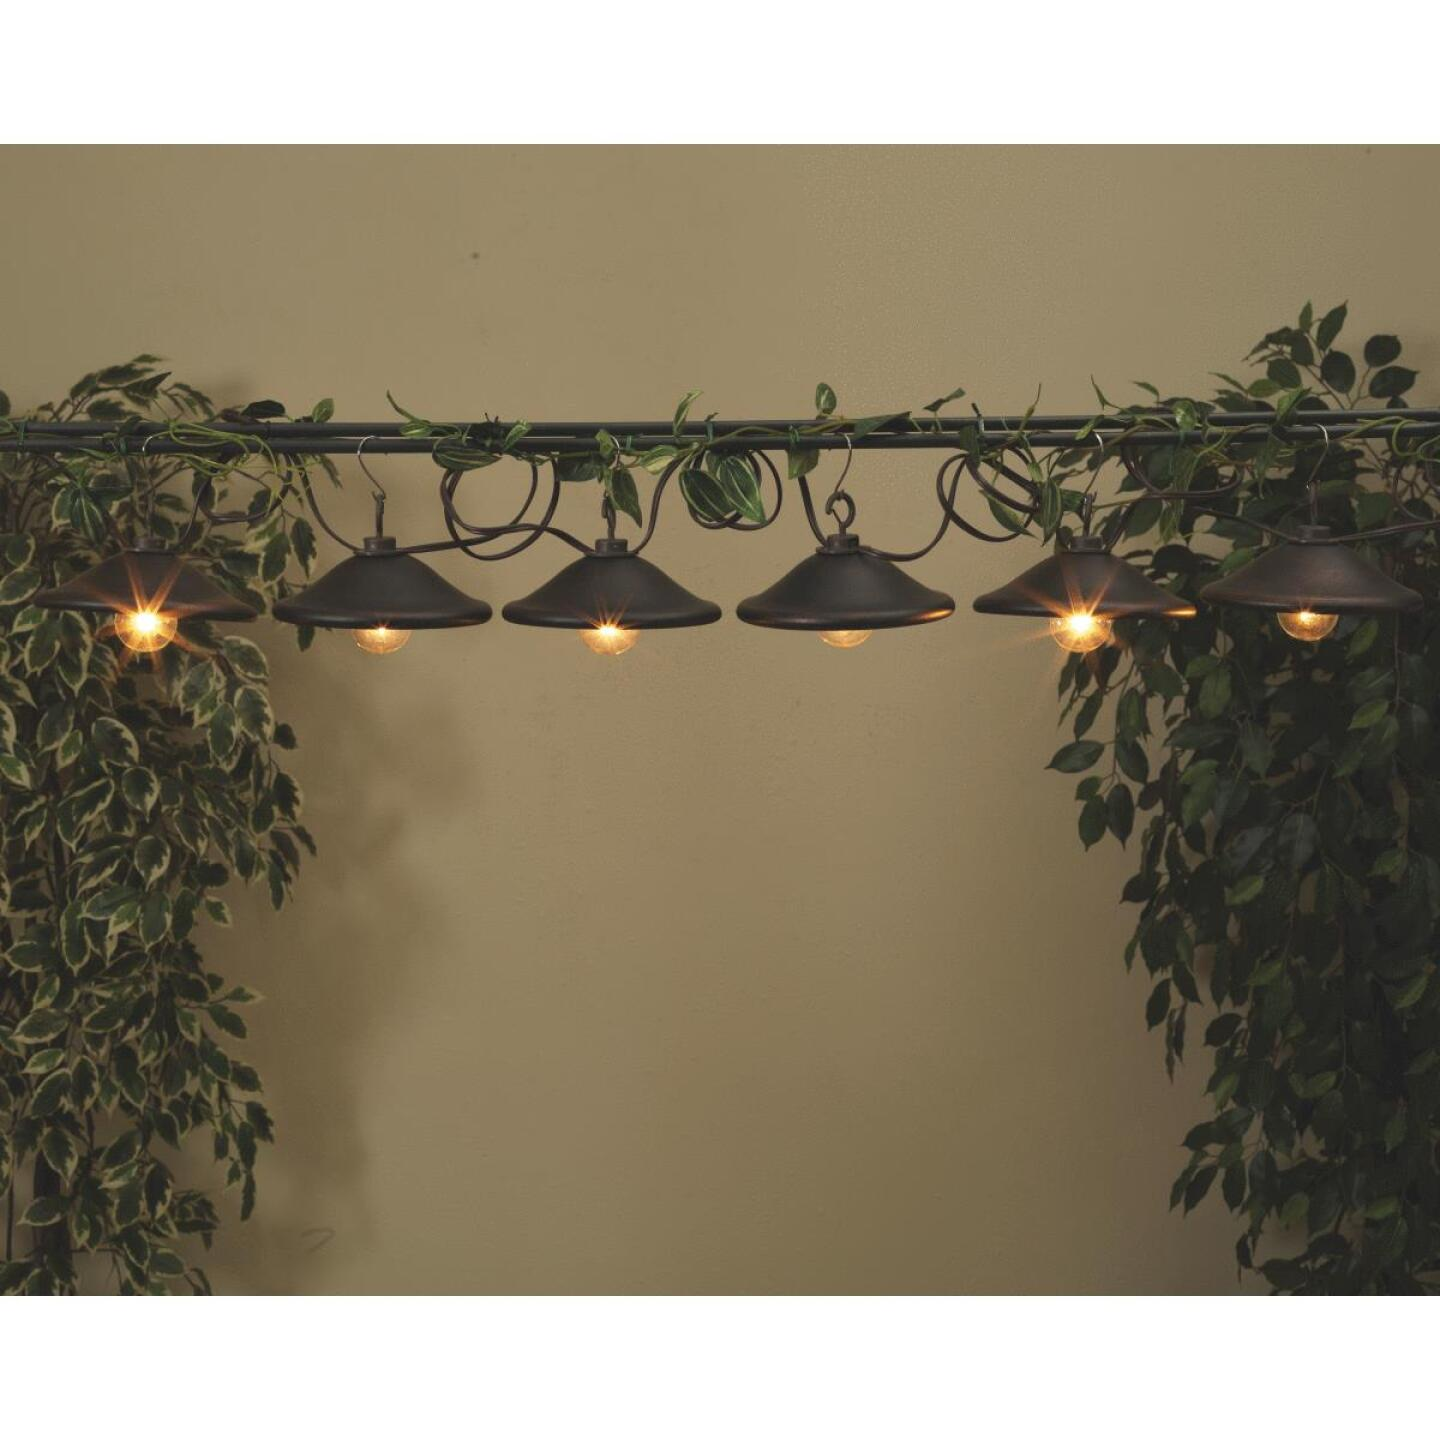 Gerson 10 Ft. 10-Light Clear Bronze Cover String Lights Image 2